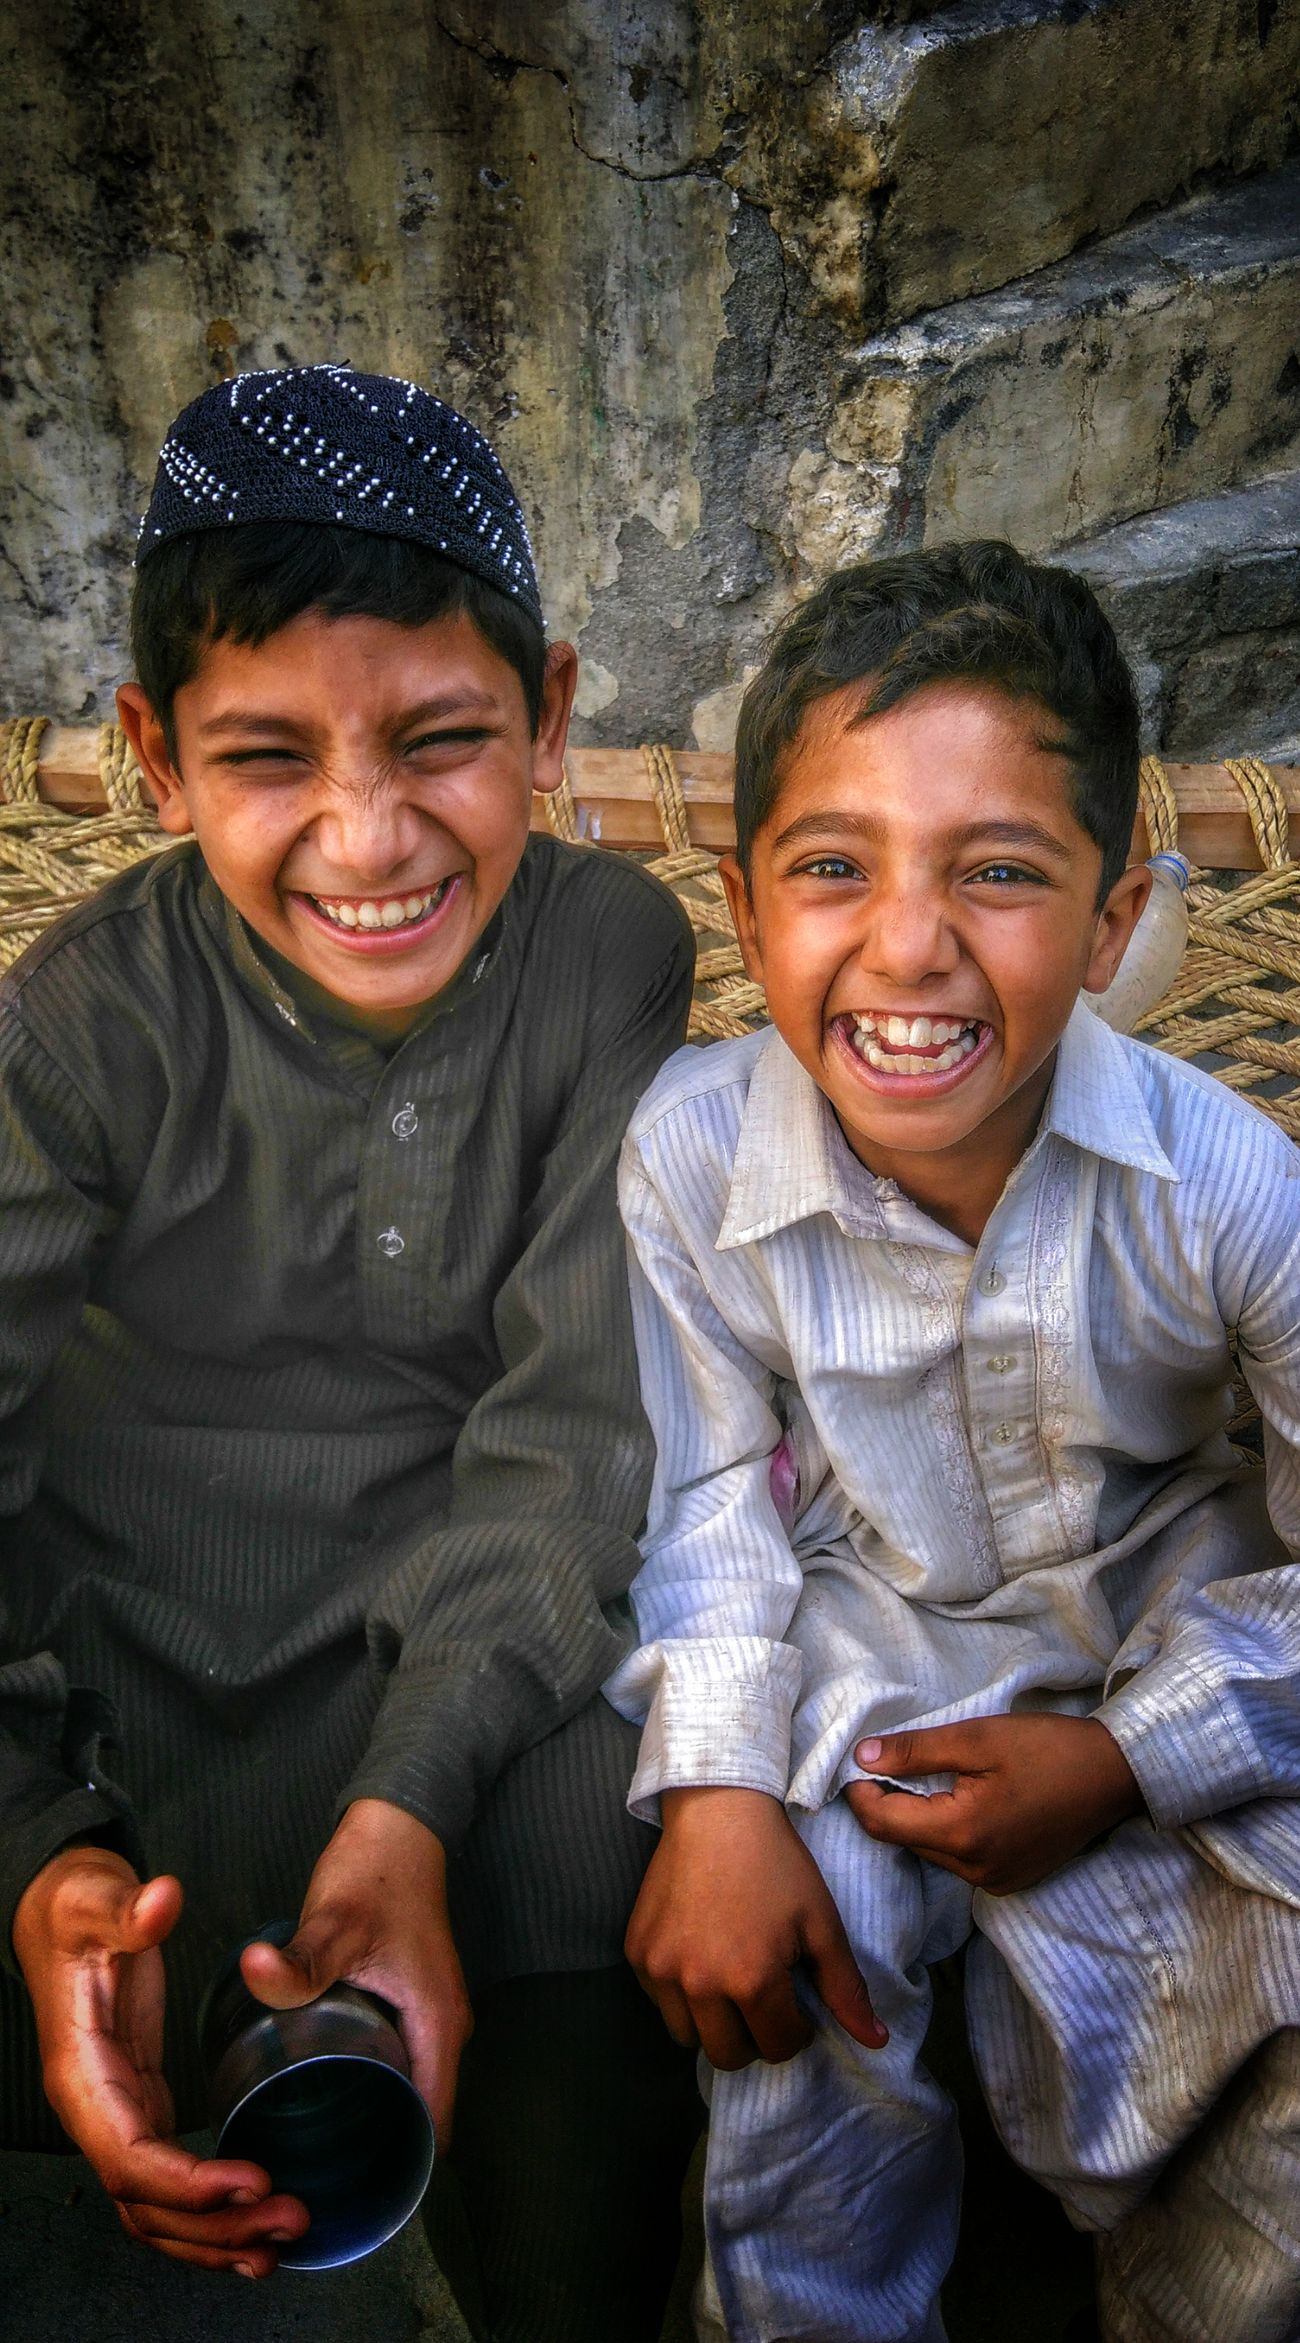 Innocentt Joyfull Tradiotional Cloths People Of EyeEm Love Happiness Enjoyment Smilling Children Photography Innocent Face Innocent Eyes Portrait Looking At Camera Togetherness Smiling Happiness Front View Leisure Activity Waist Up Person Casual Clothing Young Adult Fun Enjoyment Content